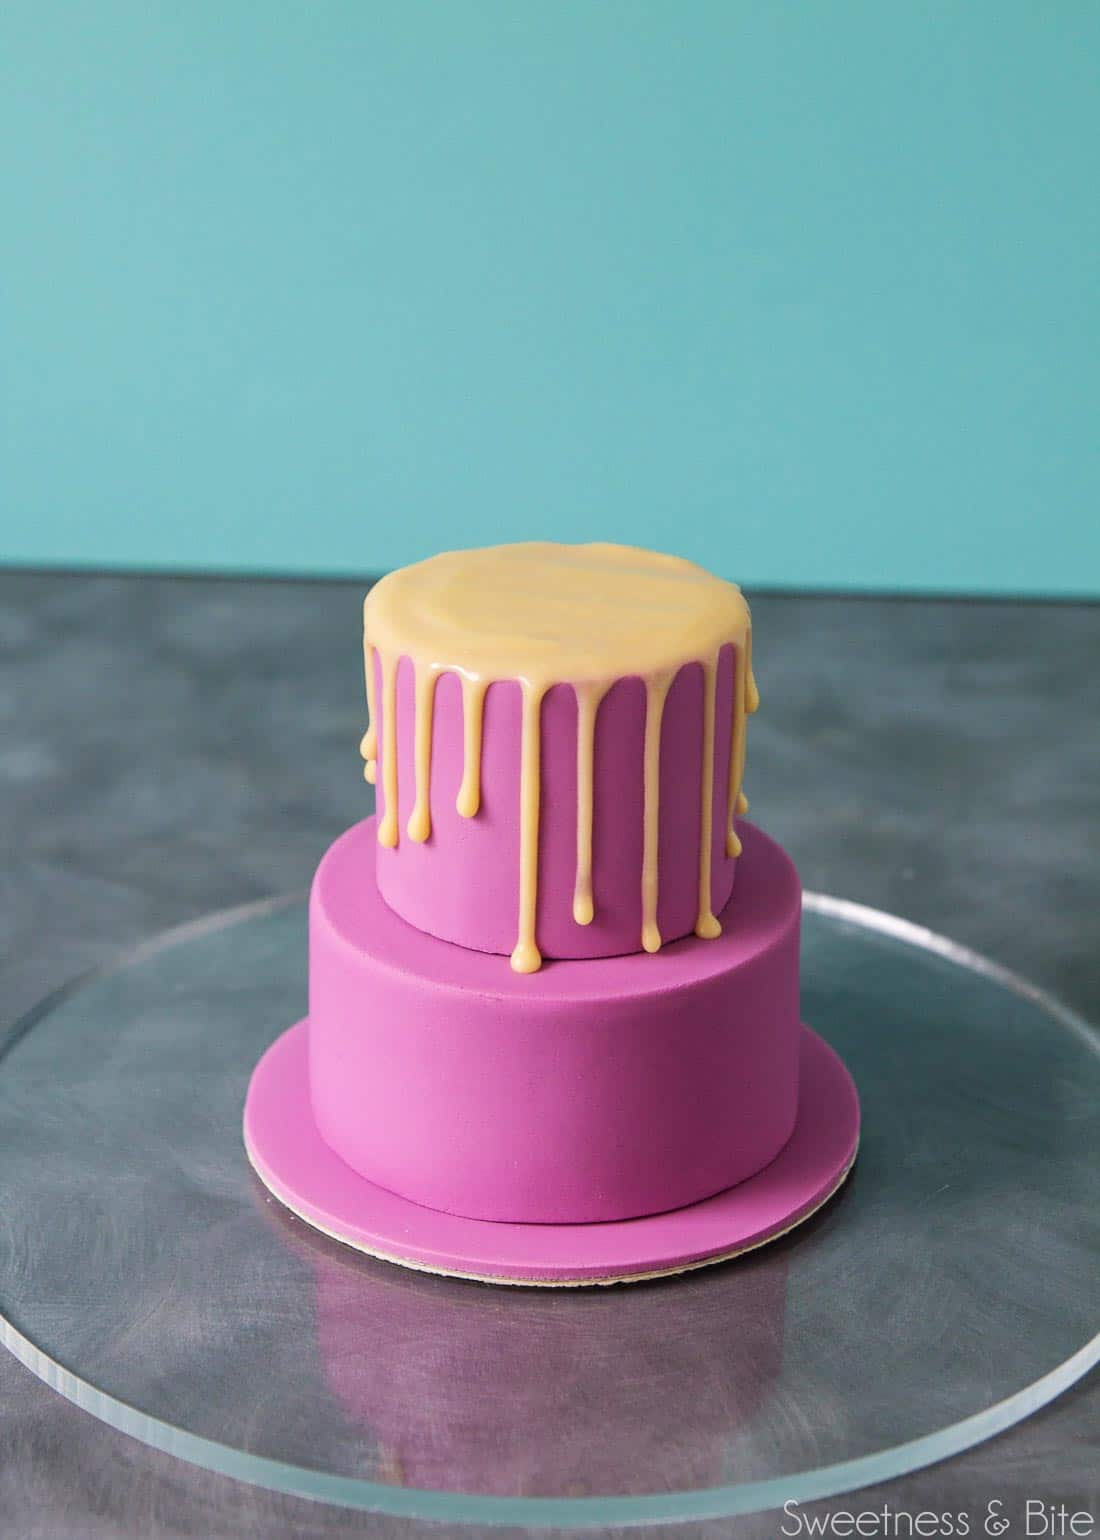 How To Make A Cake Ready For Fondant